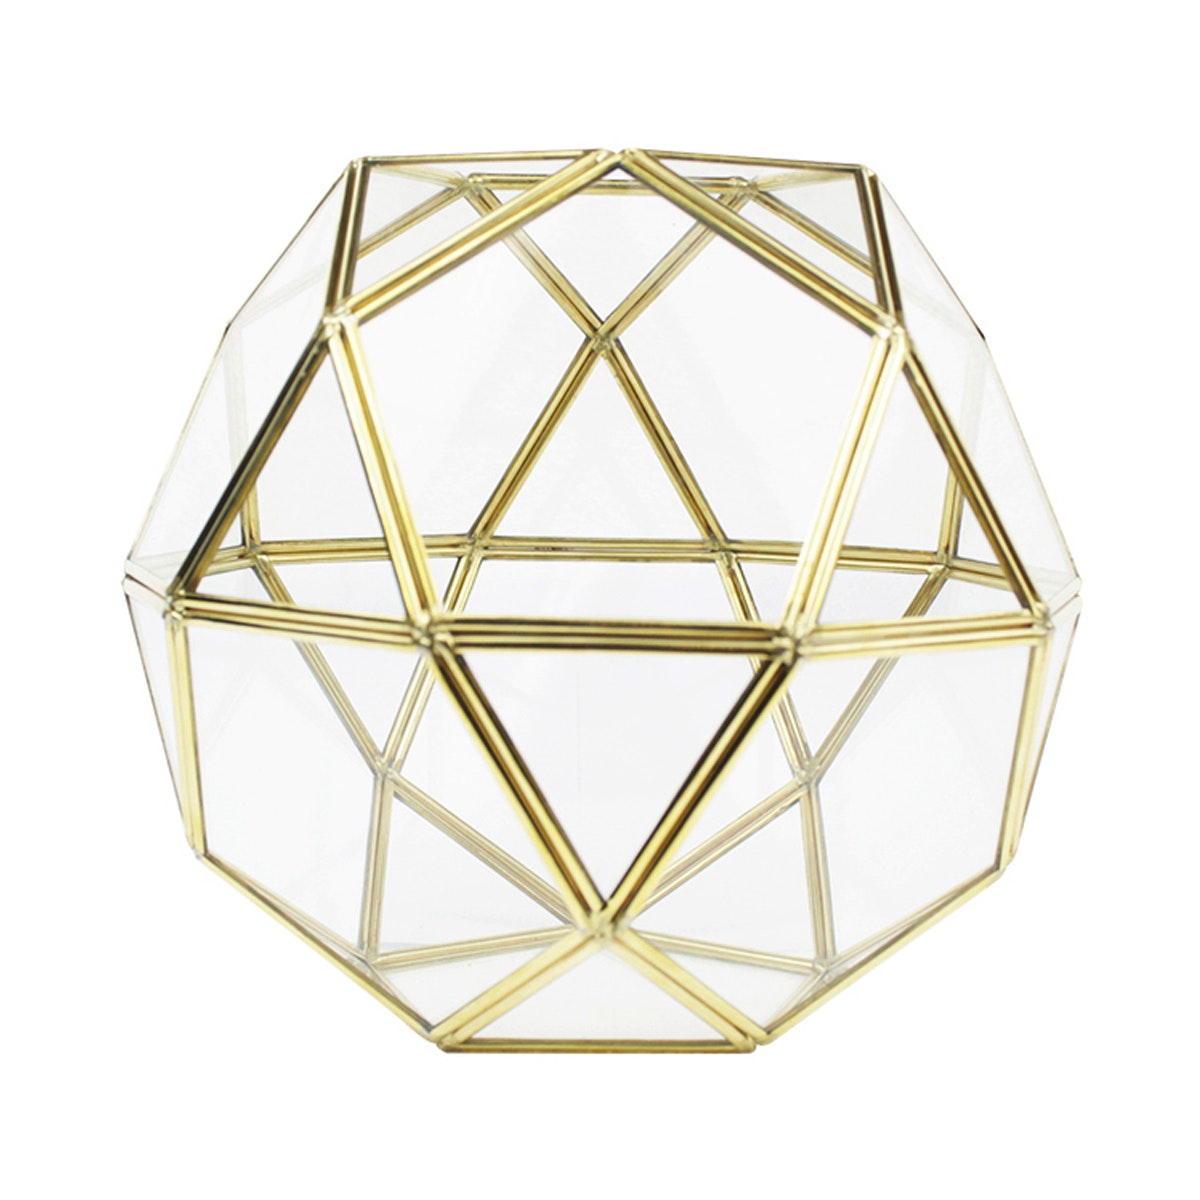 Nestudio Hope Lantern Brass